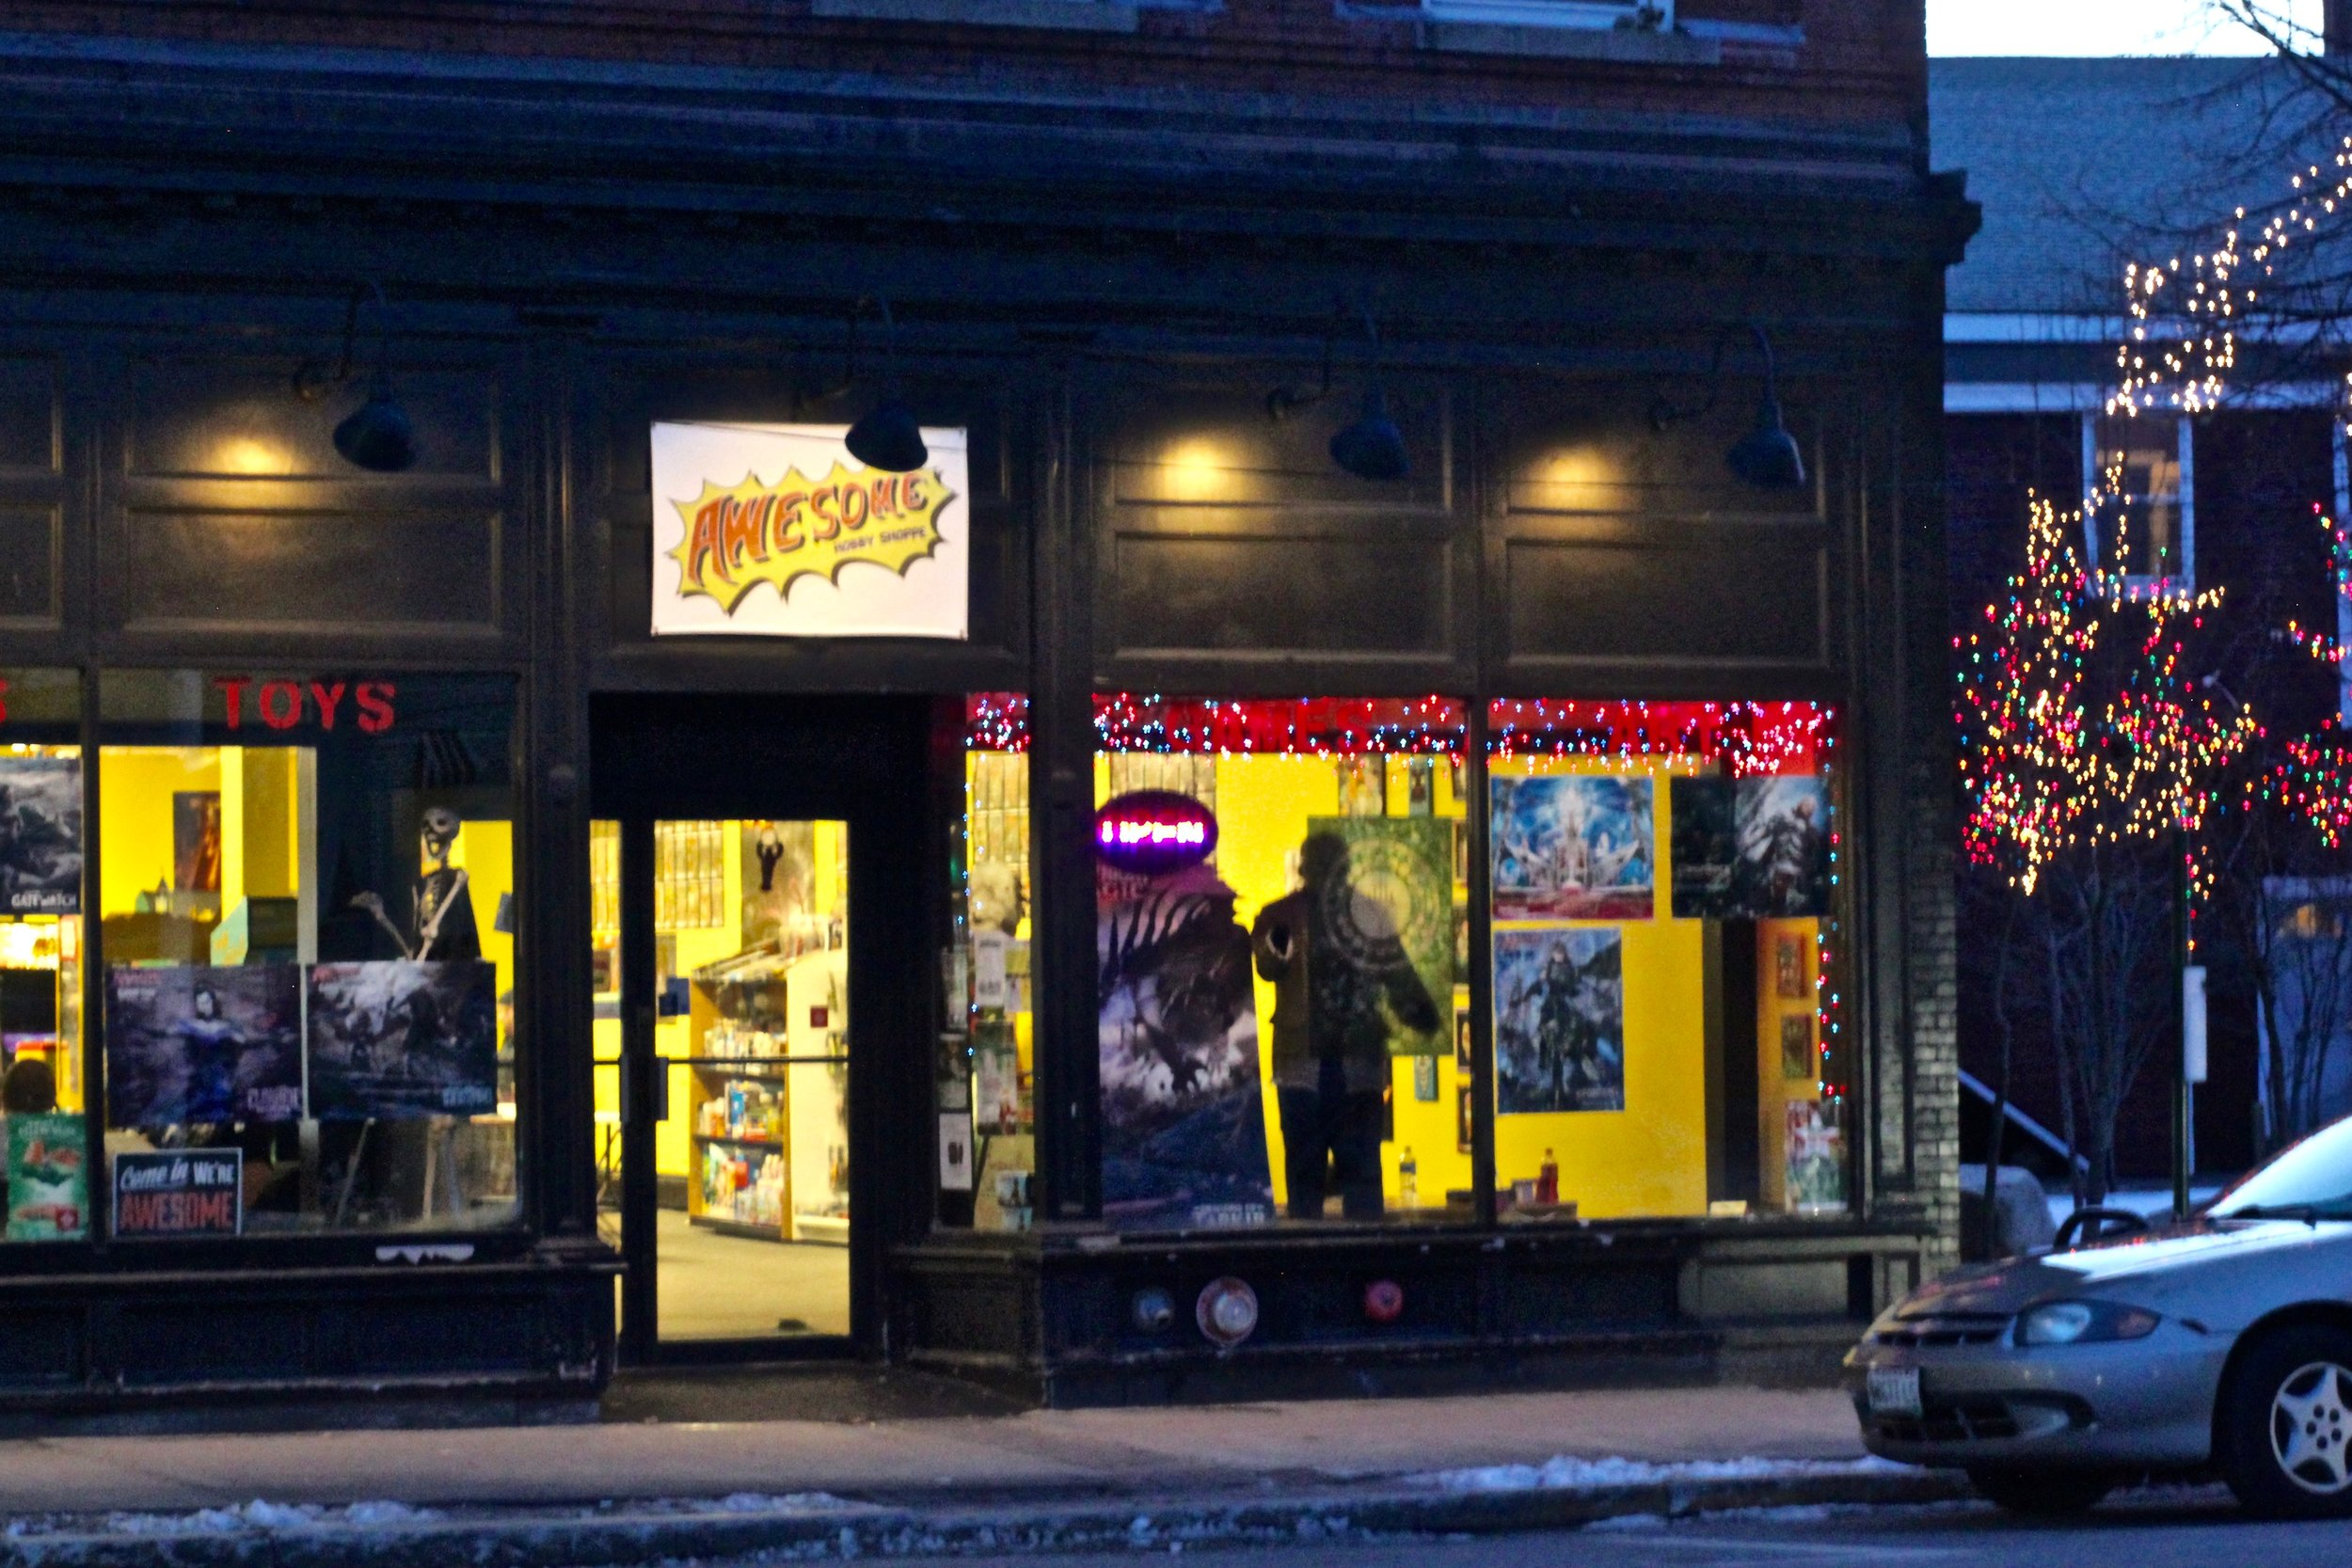 The exterior of Awesome Hobby Shoppe. That's a statue of Jason in the window.